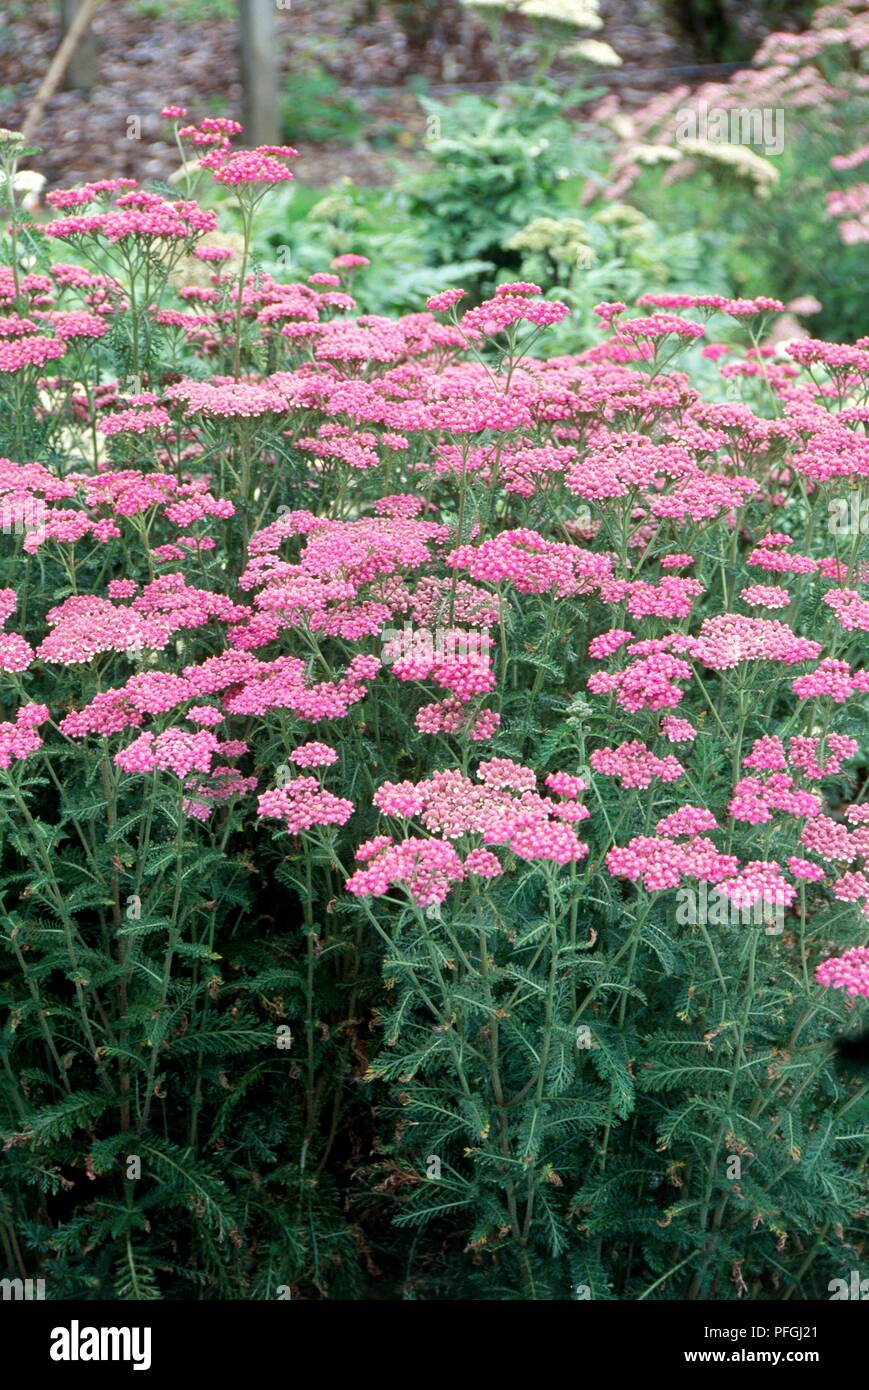 Achillea millefolium cerise queen yarrow perennial with pink achillea millefolium cerise queen yarrow perennial with pink flowers and feathery green leaves mightylinksfo